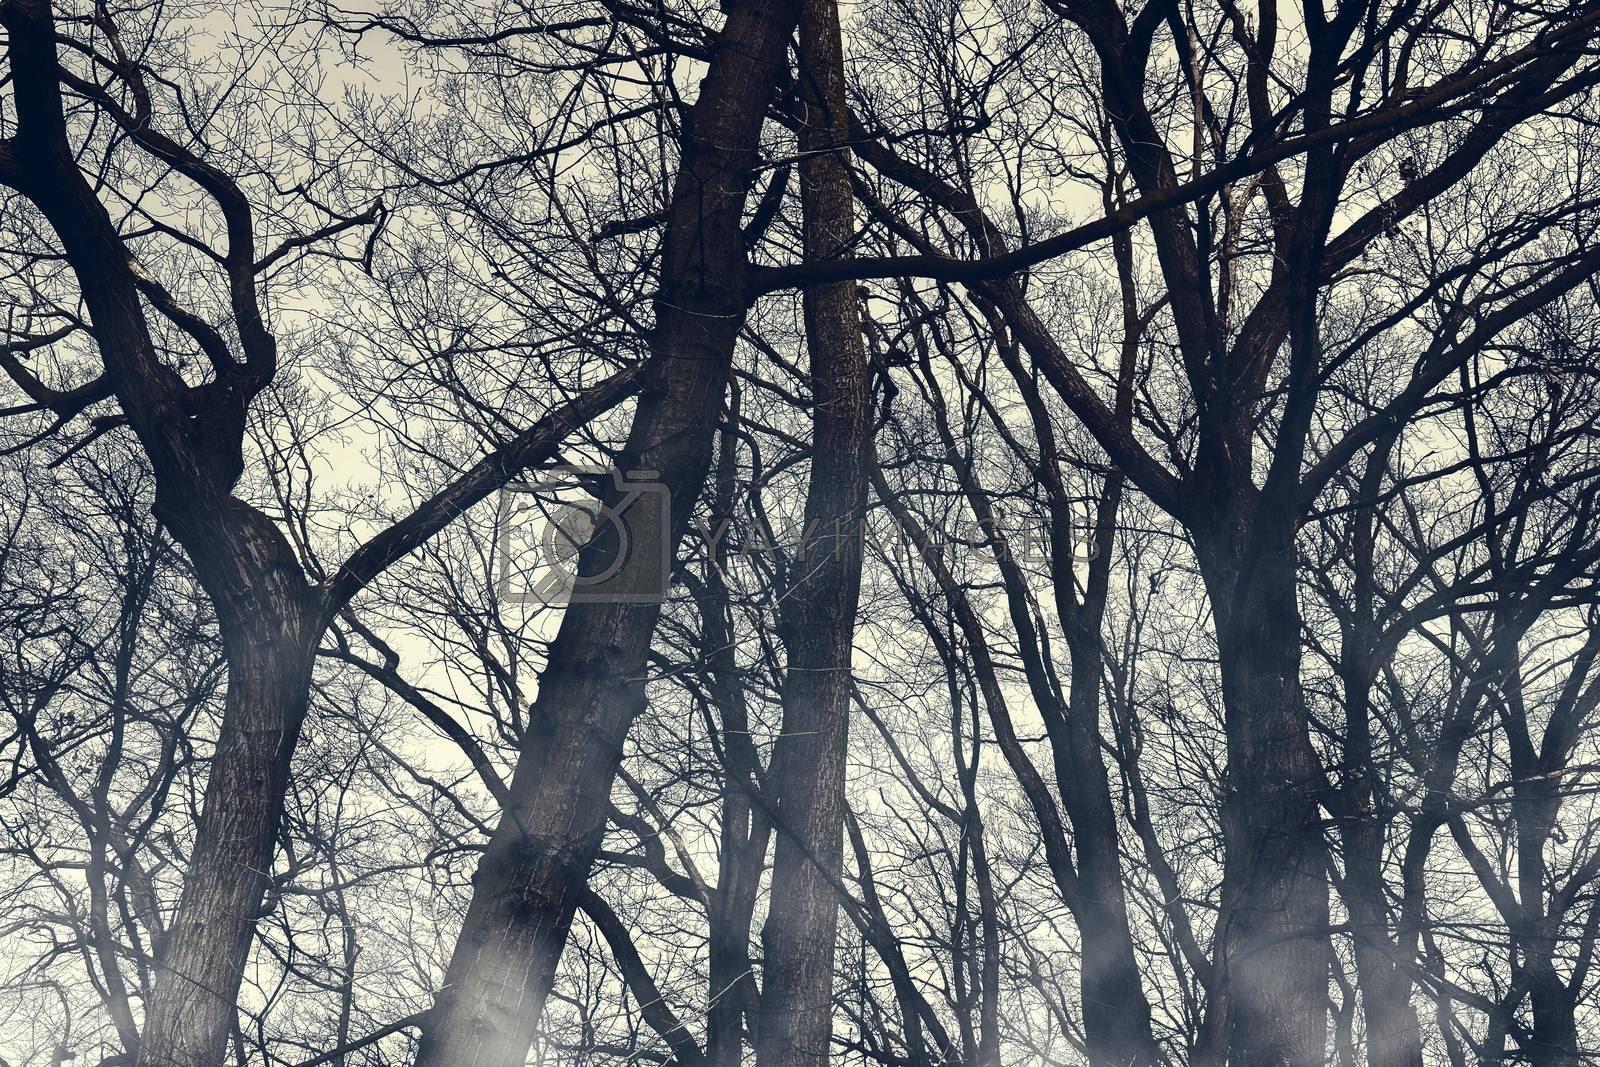 Horror foggy trees silhouettes wallpaper. Halloween mystery woodland with mysterious fog. Spooky scenery with misty shadow. Moody, monochrome, photo of gloomy, creepy, forest.